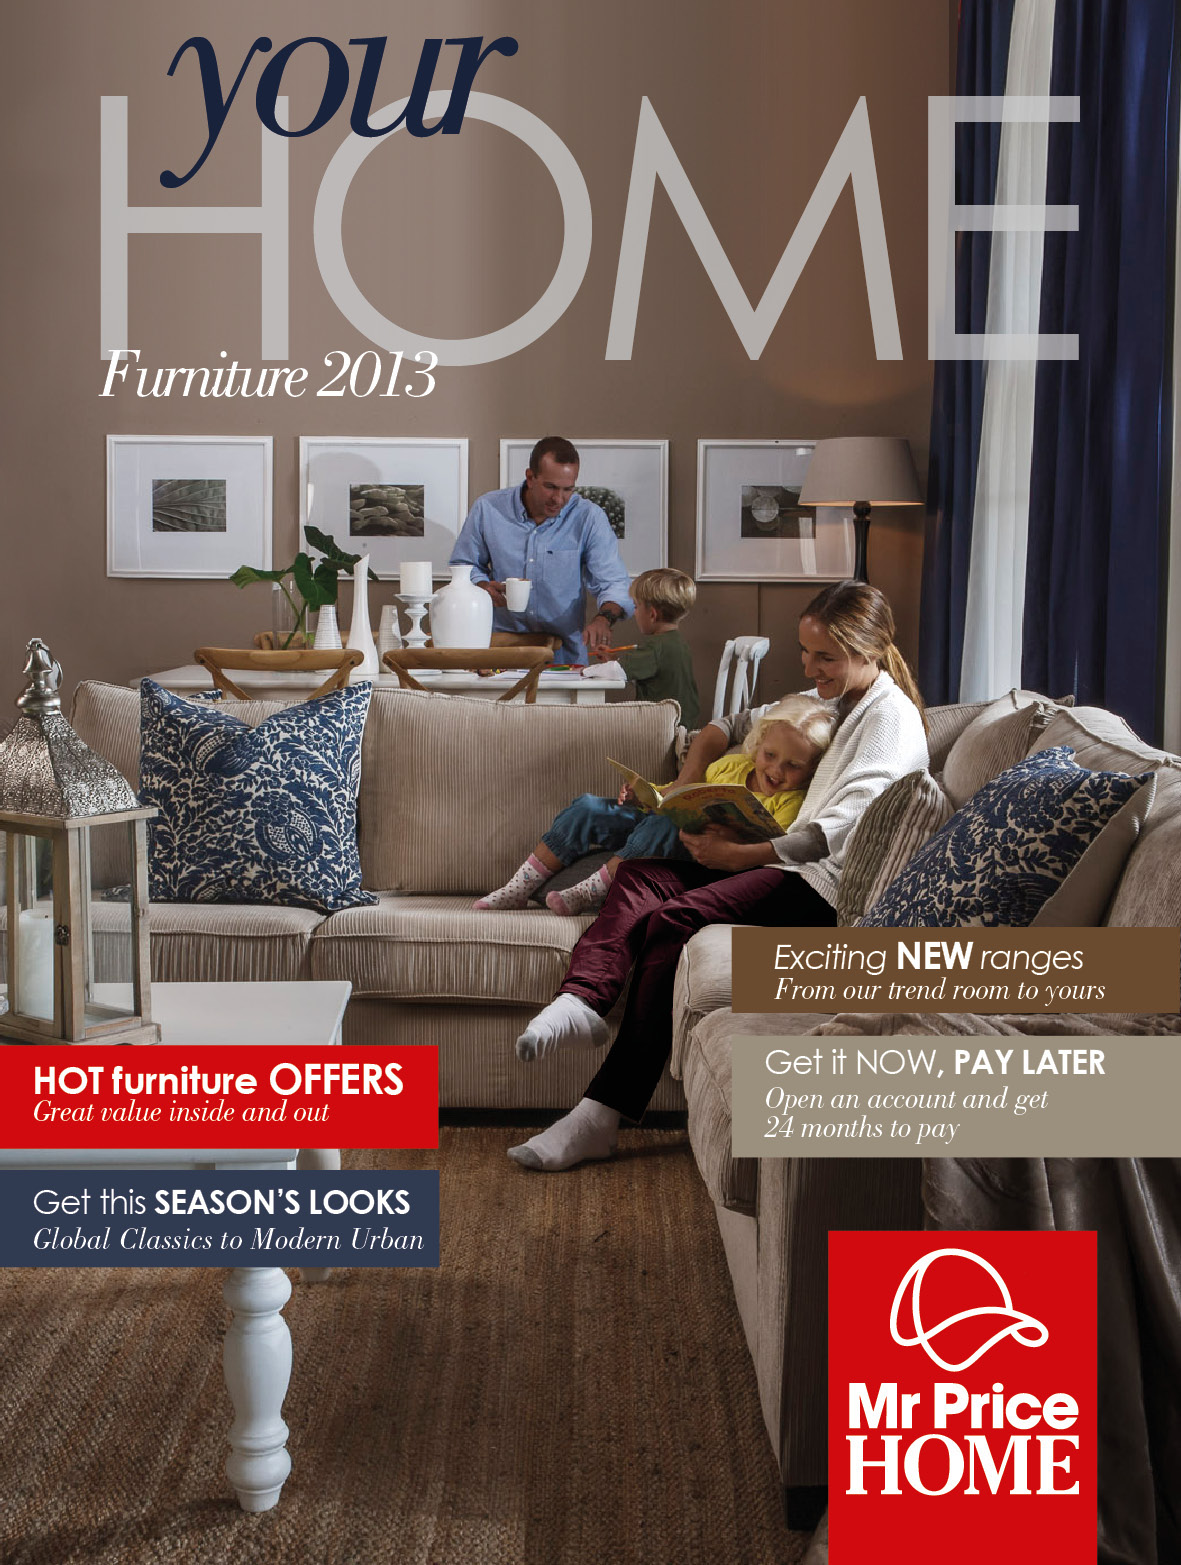 Mr Price Home Furniture Catalogue 2012 28 Images Mr Price Home Furniture Catalogue 2011 By